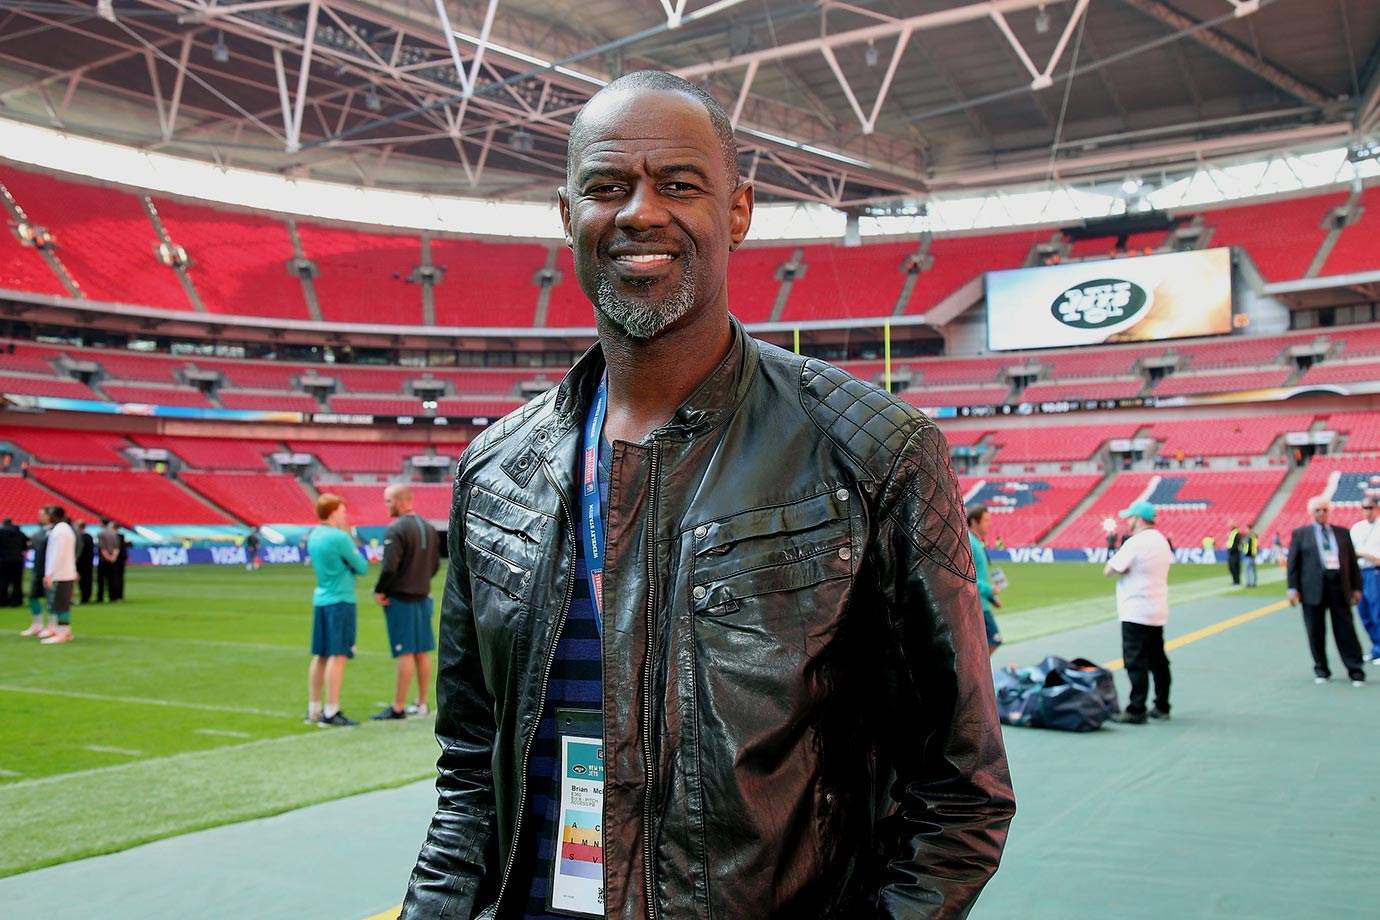 Miami Dolphins vs. New York Jets on Oct. 4, 2015 at Wembley Stadium in London.